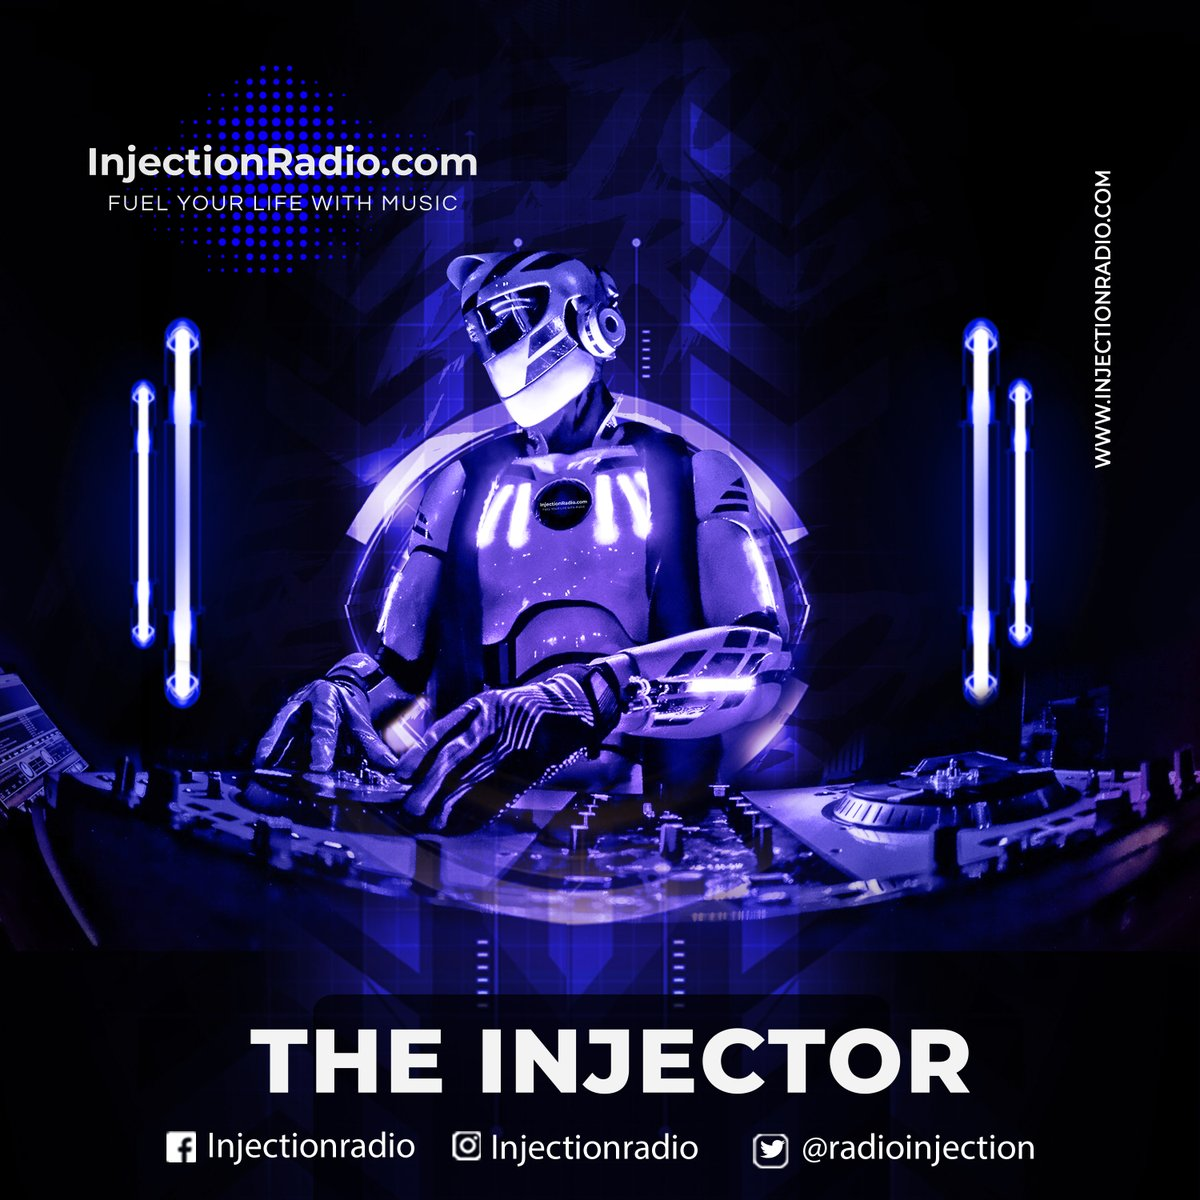 Remember! We currently have no Live DJ's during the day! But THE INJECTOR is here to keep you partying strong! Tune in now at http://www.injectionradio.com #party #partyatwork #partytime #grabthespeaker #liveradio #robotpic.twitter.com/94AQoH3AFK